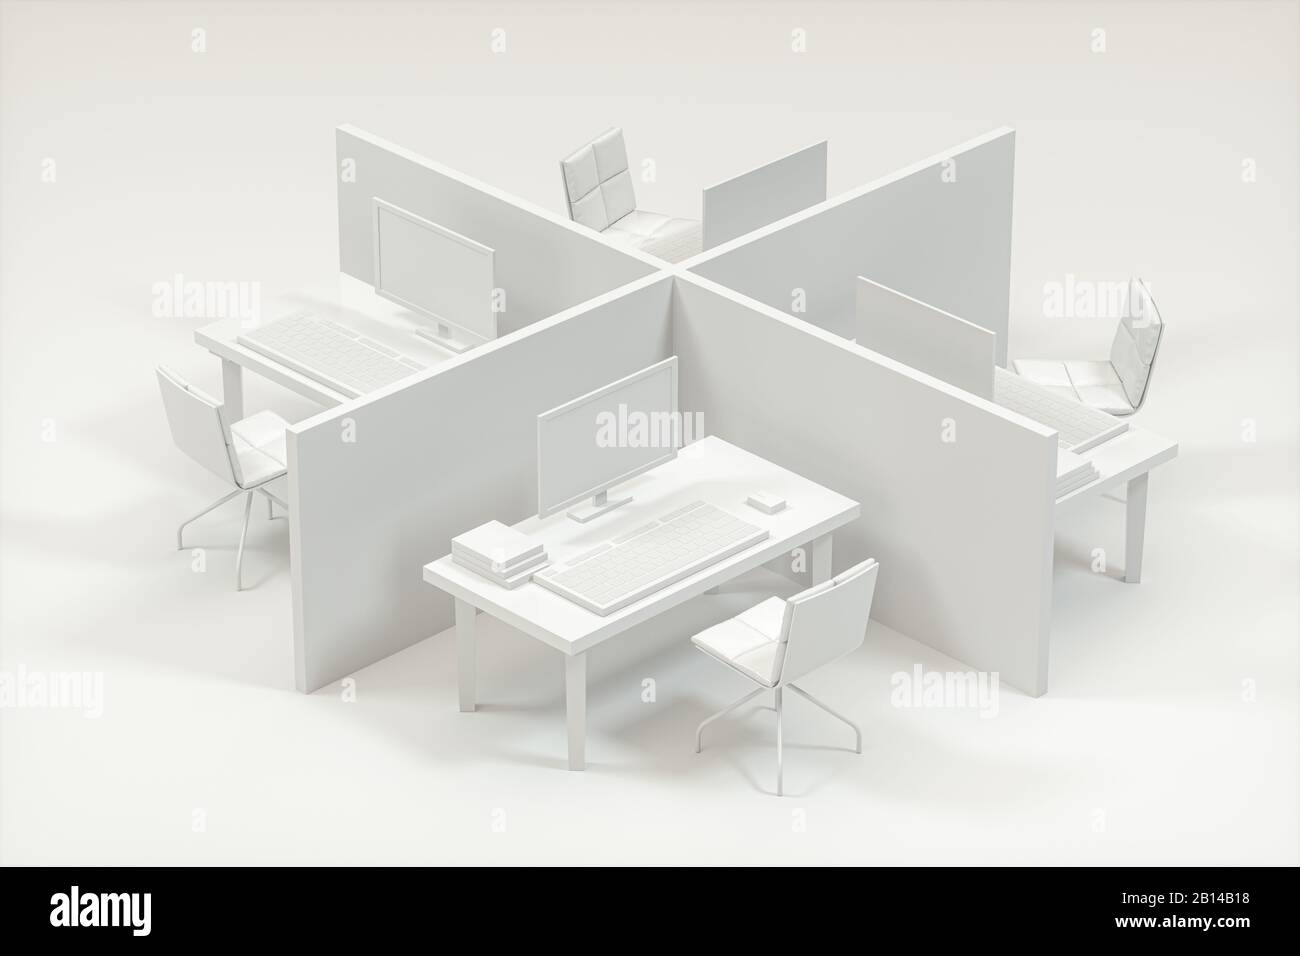 Office Model With White Background Abstract Conception 3d